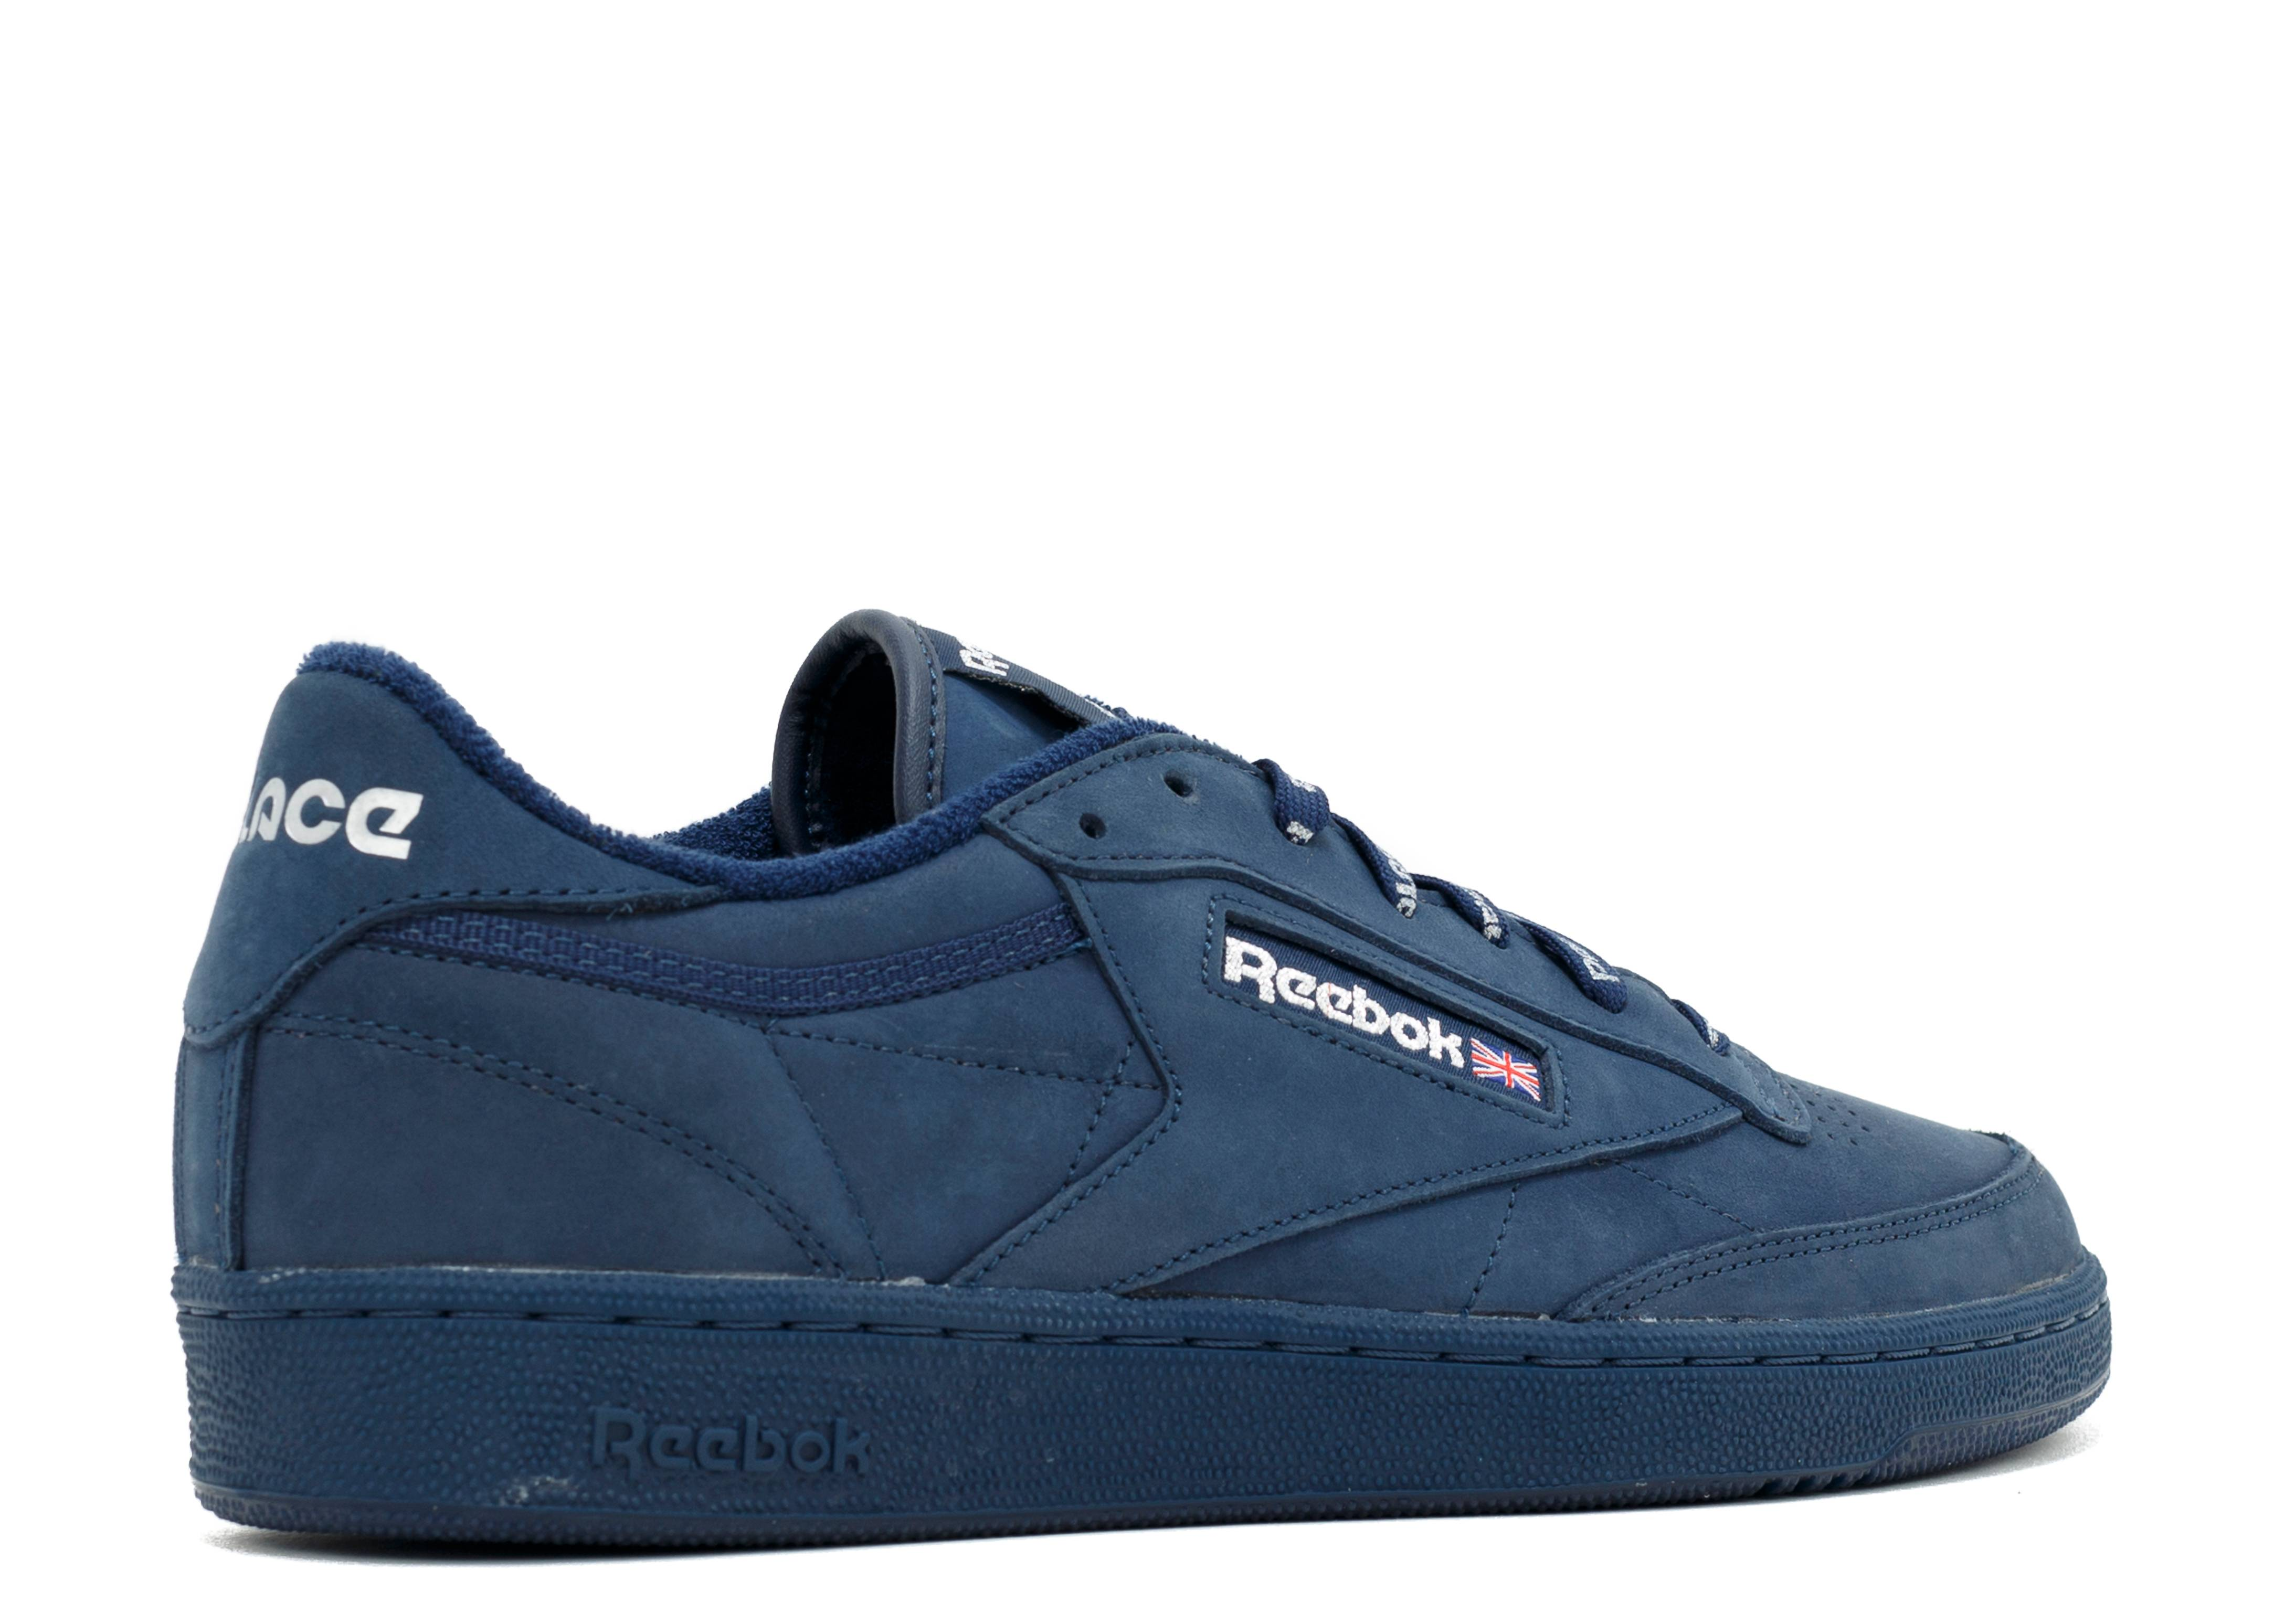 ad35e69b662 Reebok Club C 85 Palace Shoes Running Training Casual